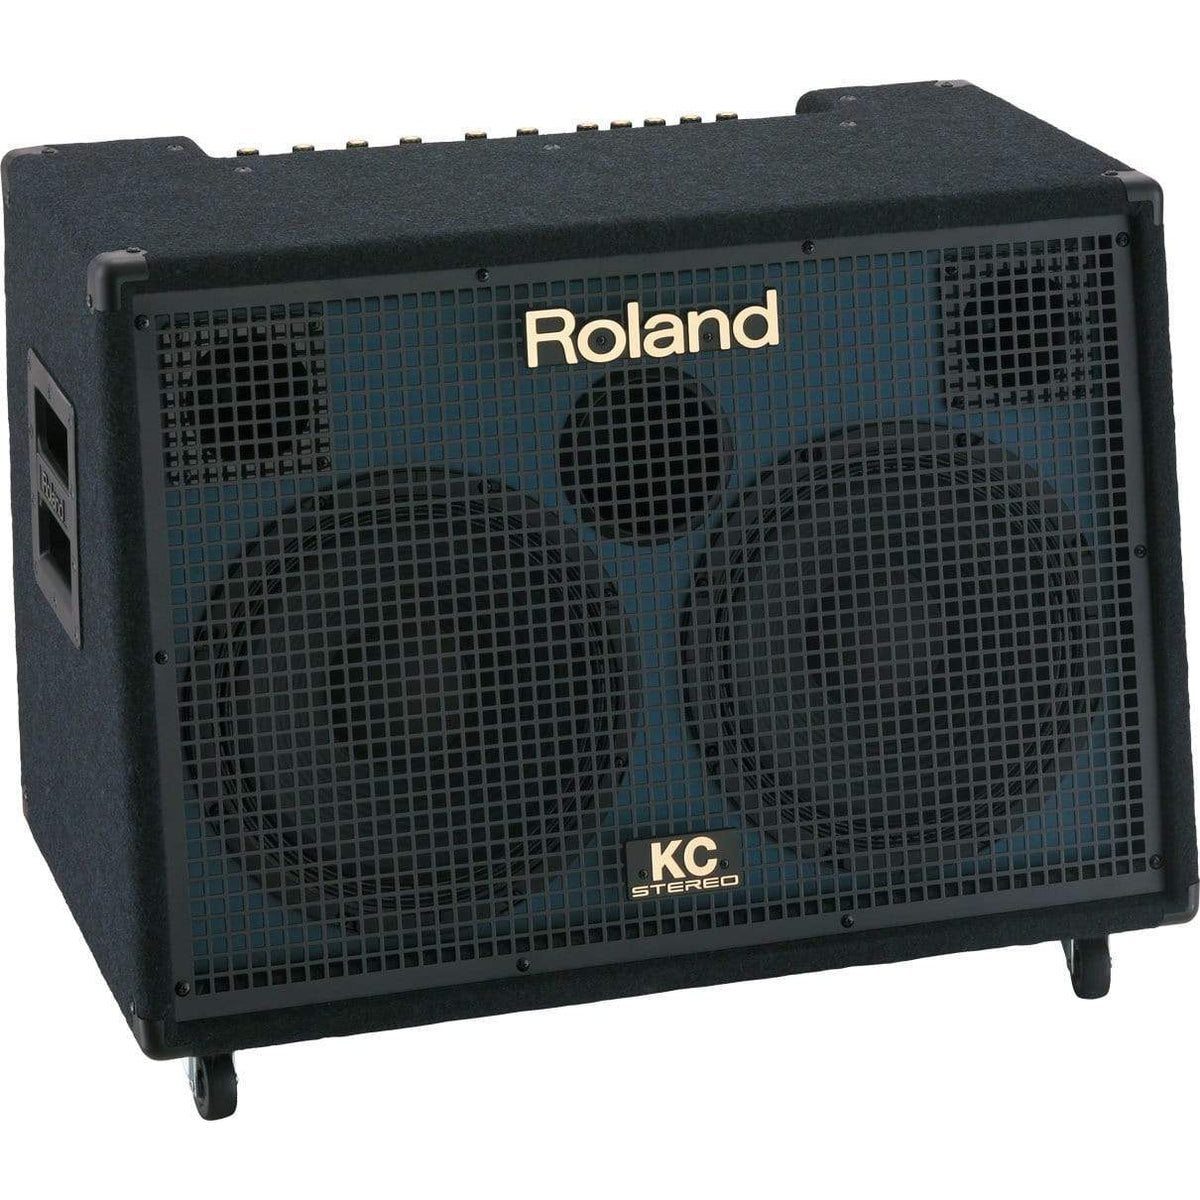 Roland KC-880 Stereo Mixing Keyboard Amplifier